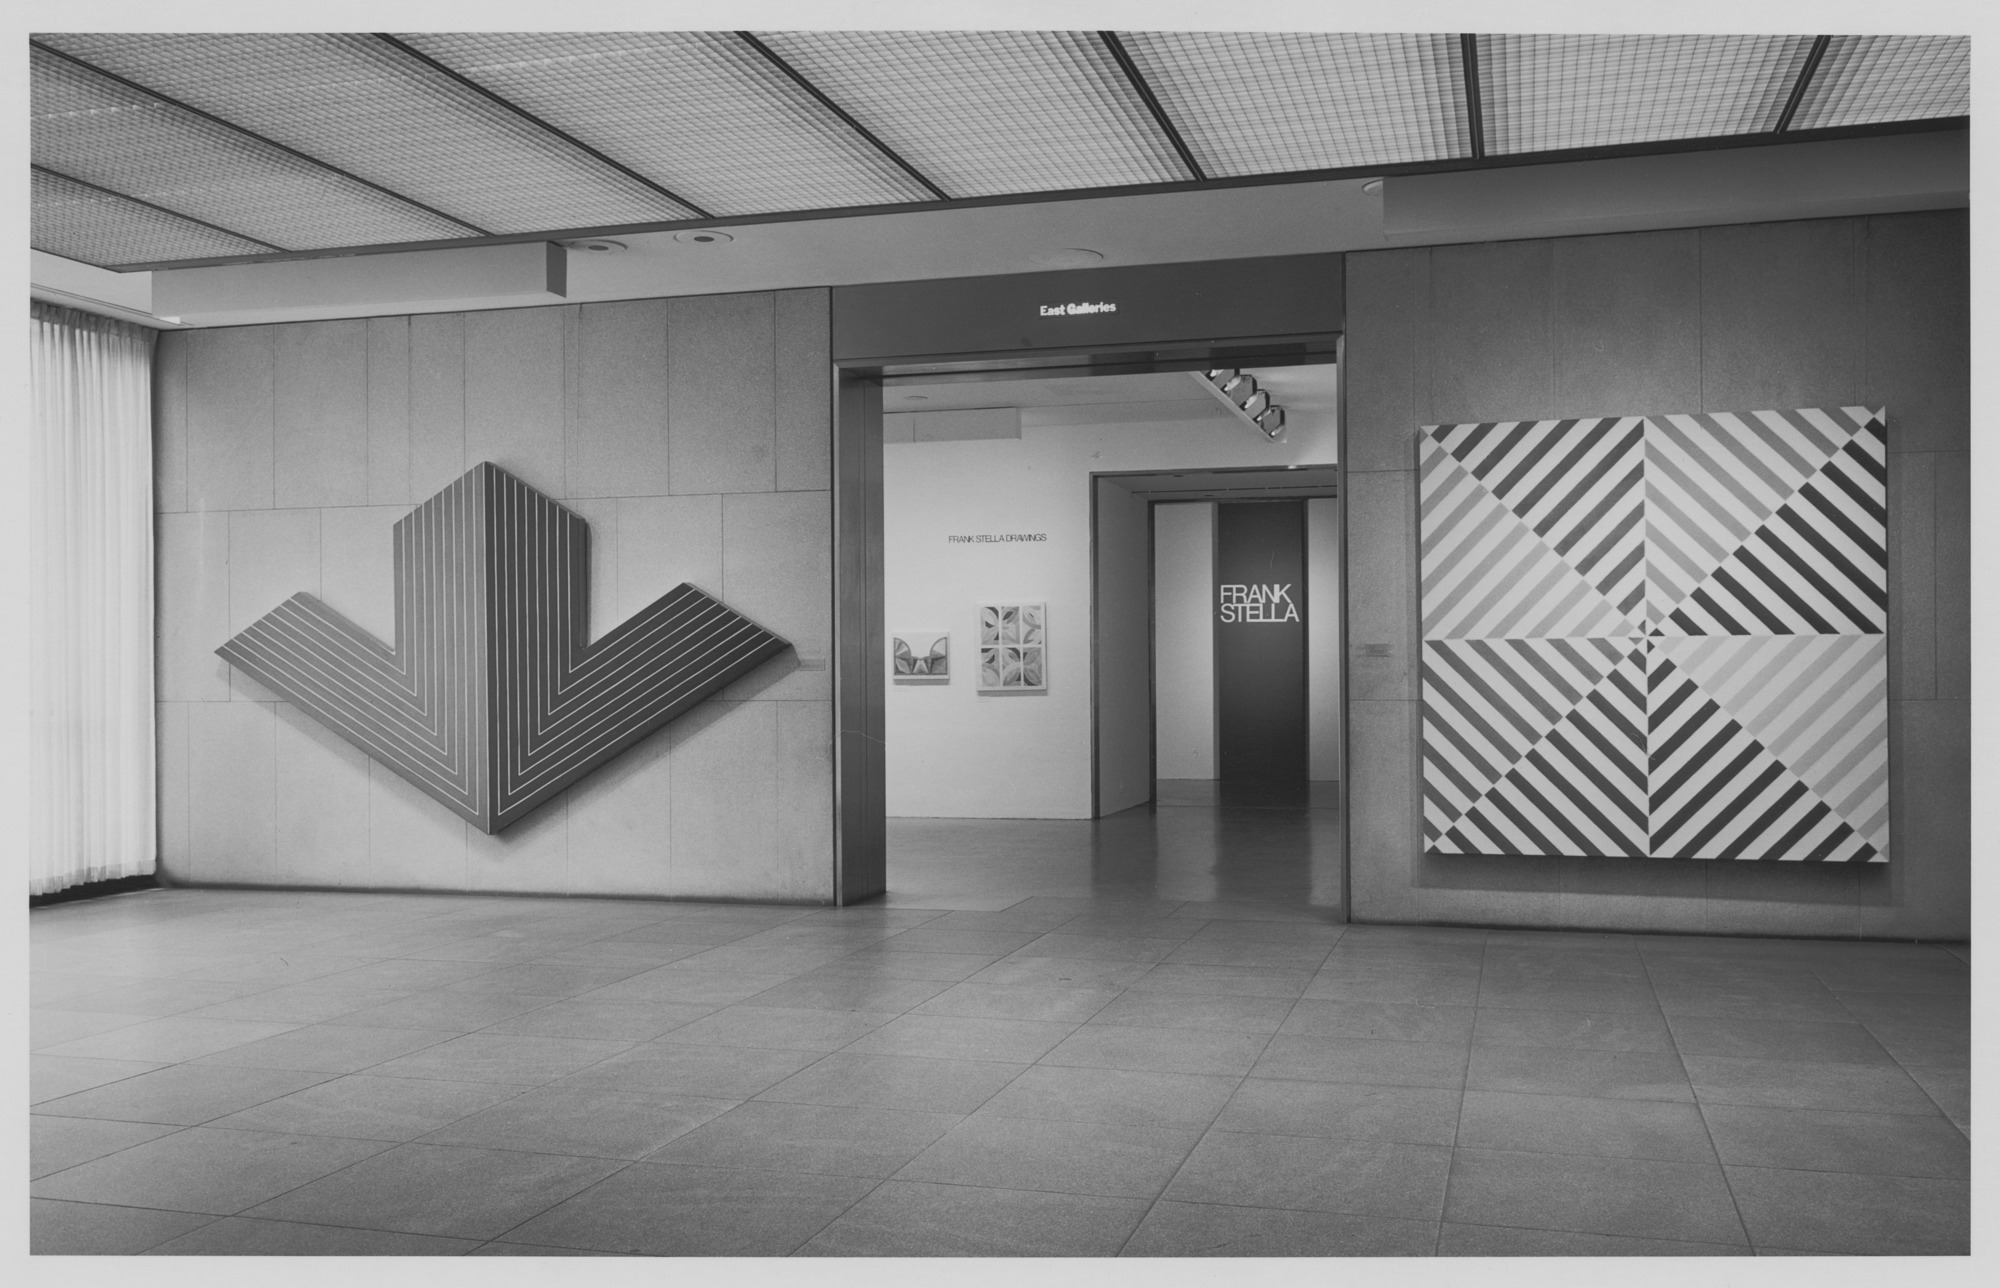 Frank Stella's retrospective at MoMA in 1970. Image: MoMA